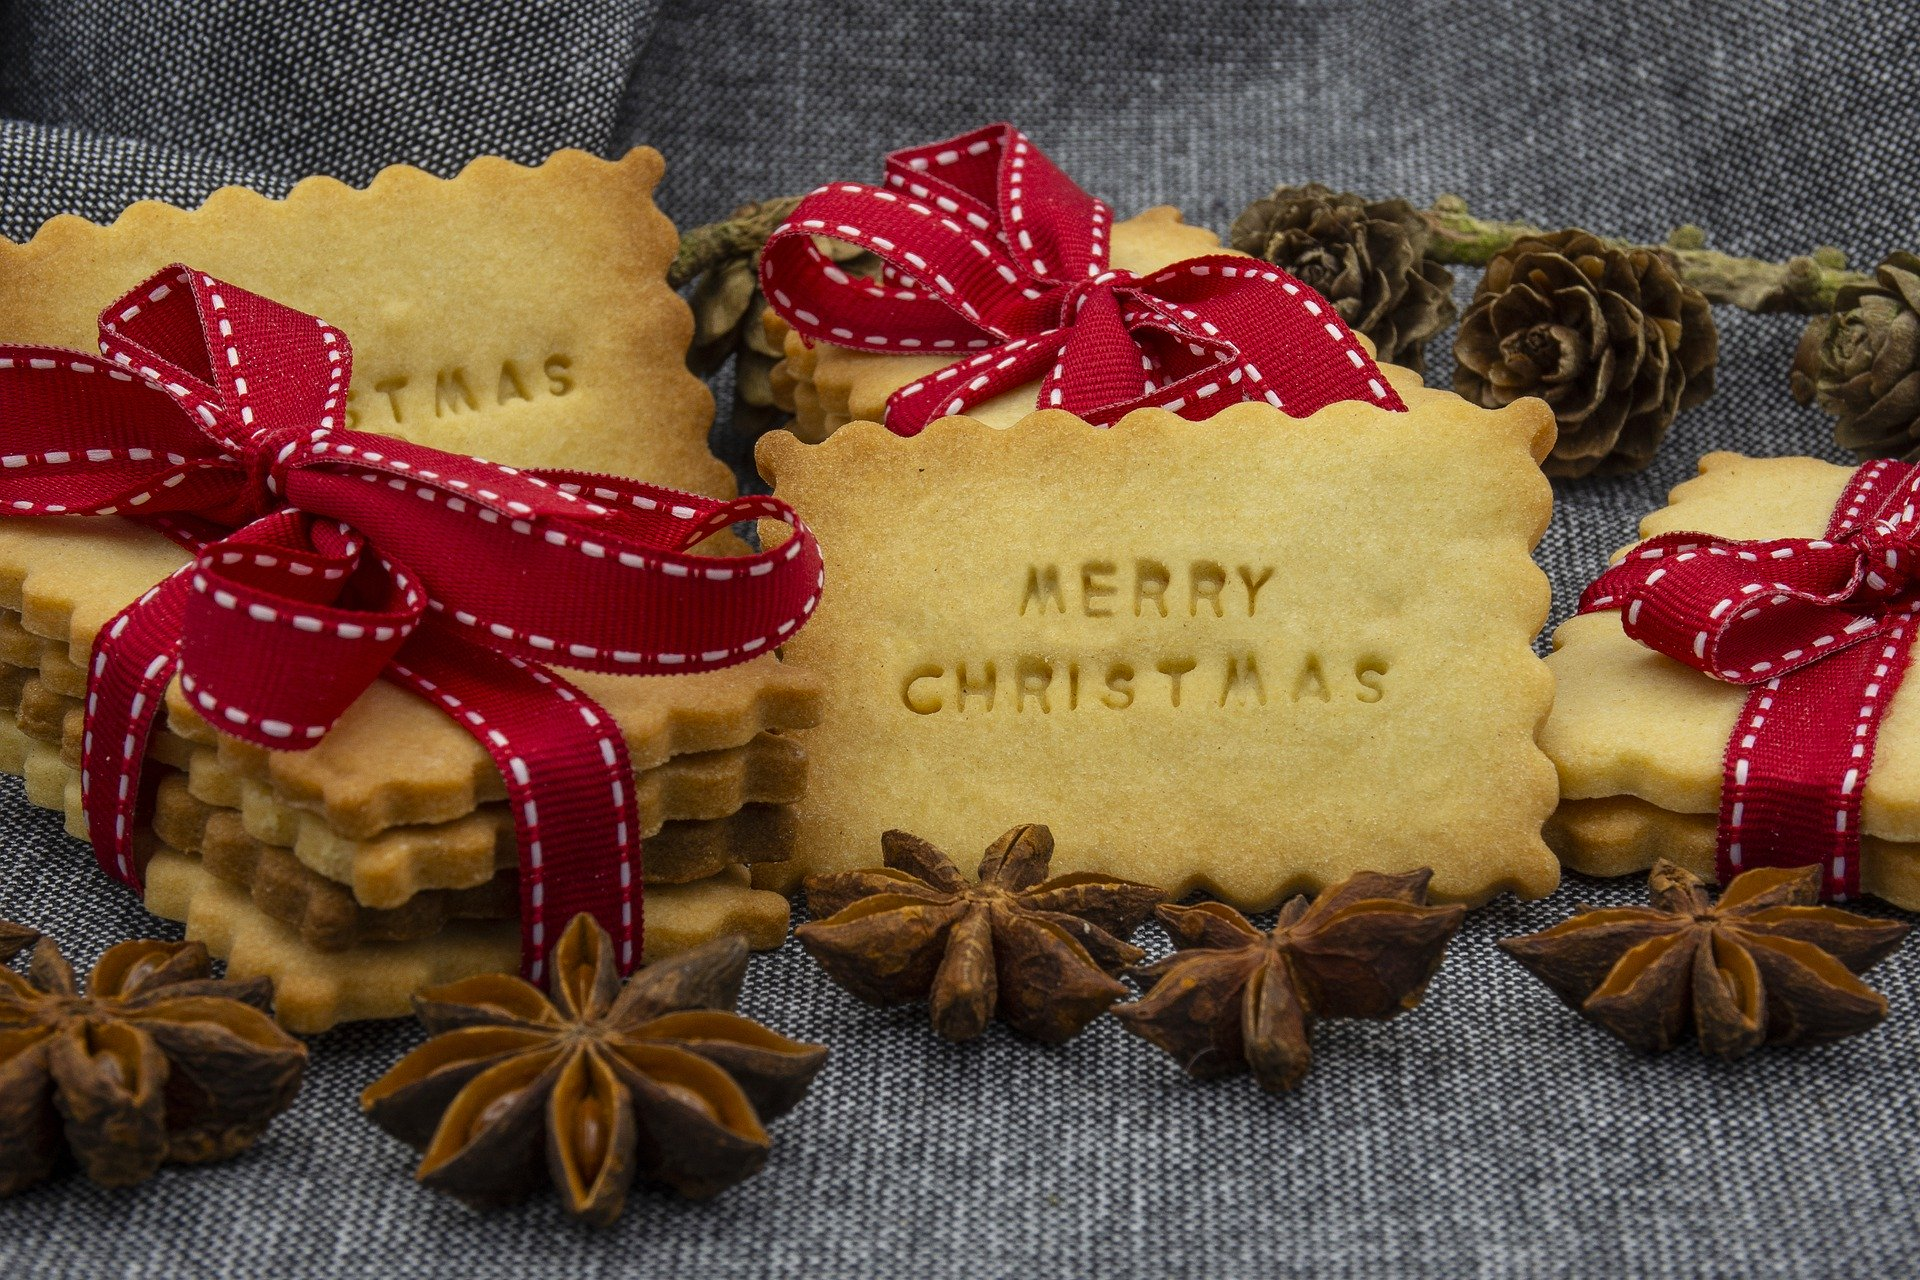 MERRY CHRISTMAS AND A HAPPY NEW YEAR FROM EVERYONE AT CURRENCYDEALS4U!